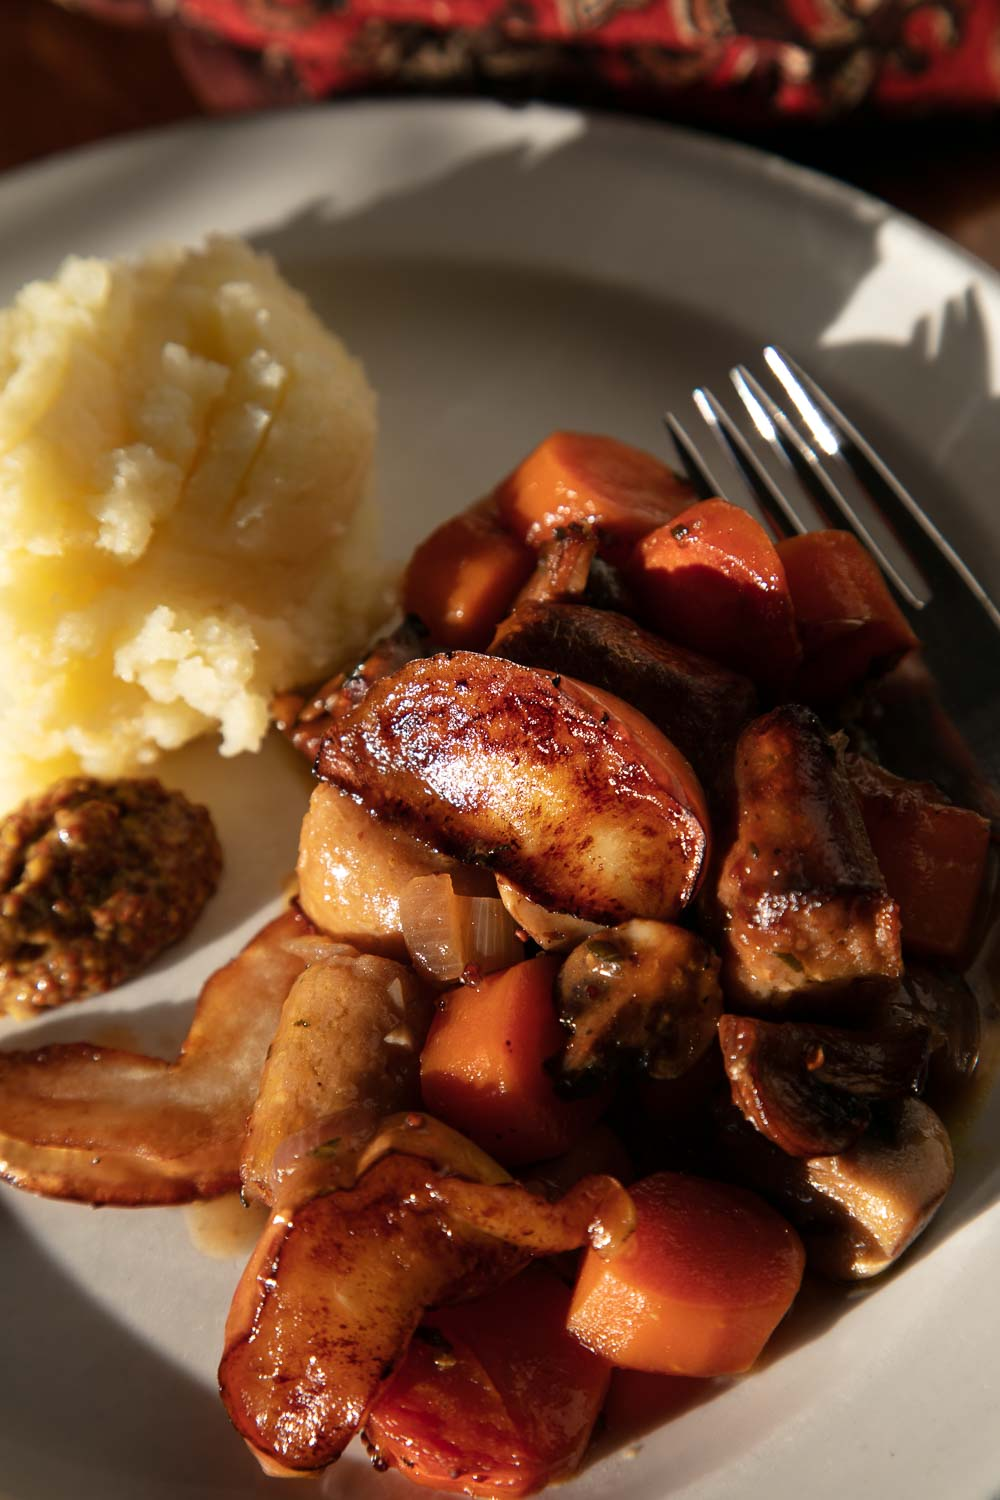 Vegan Sausage and Apple Casserole served with mashed potato and grain mustard.